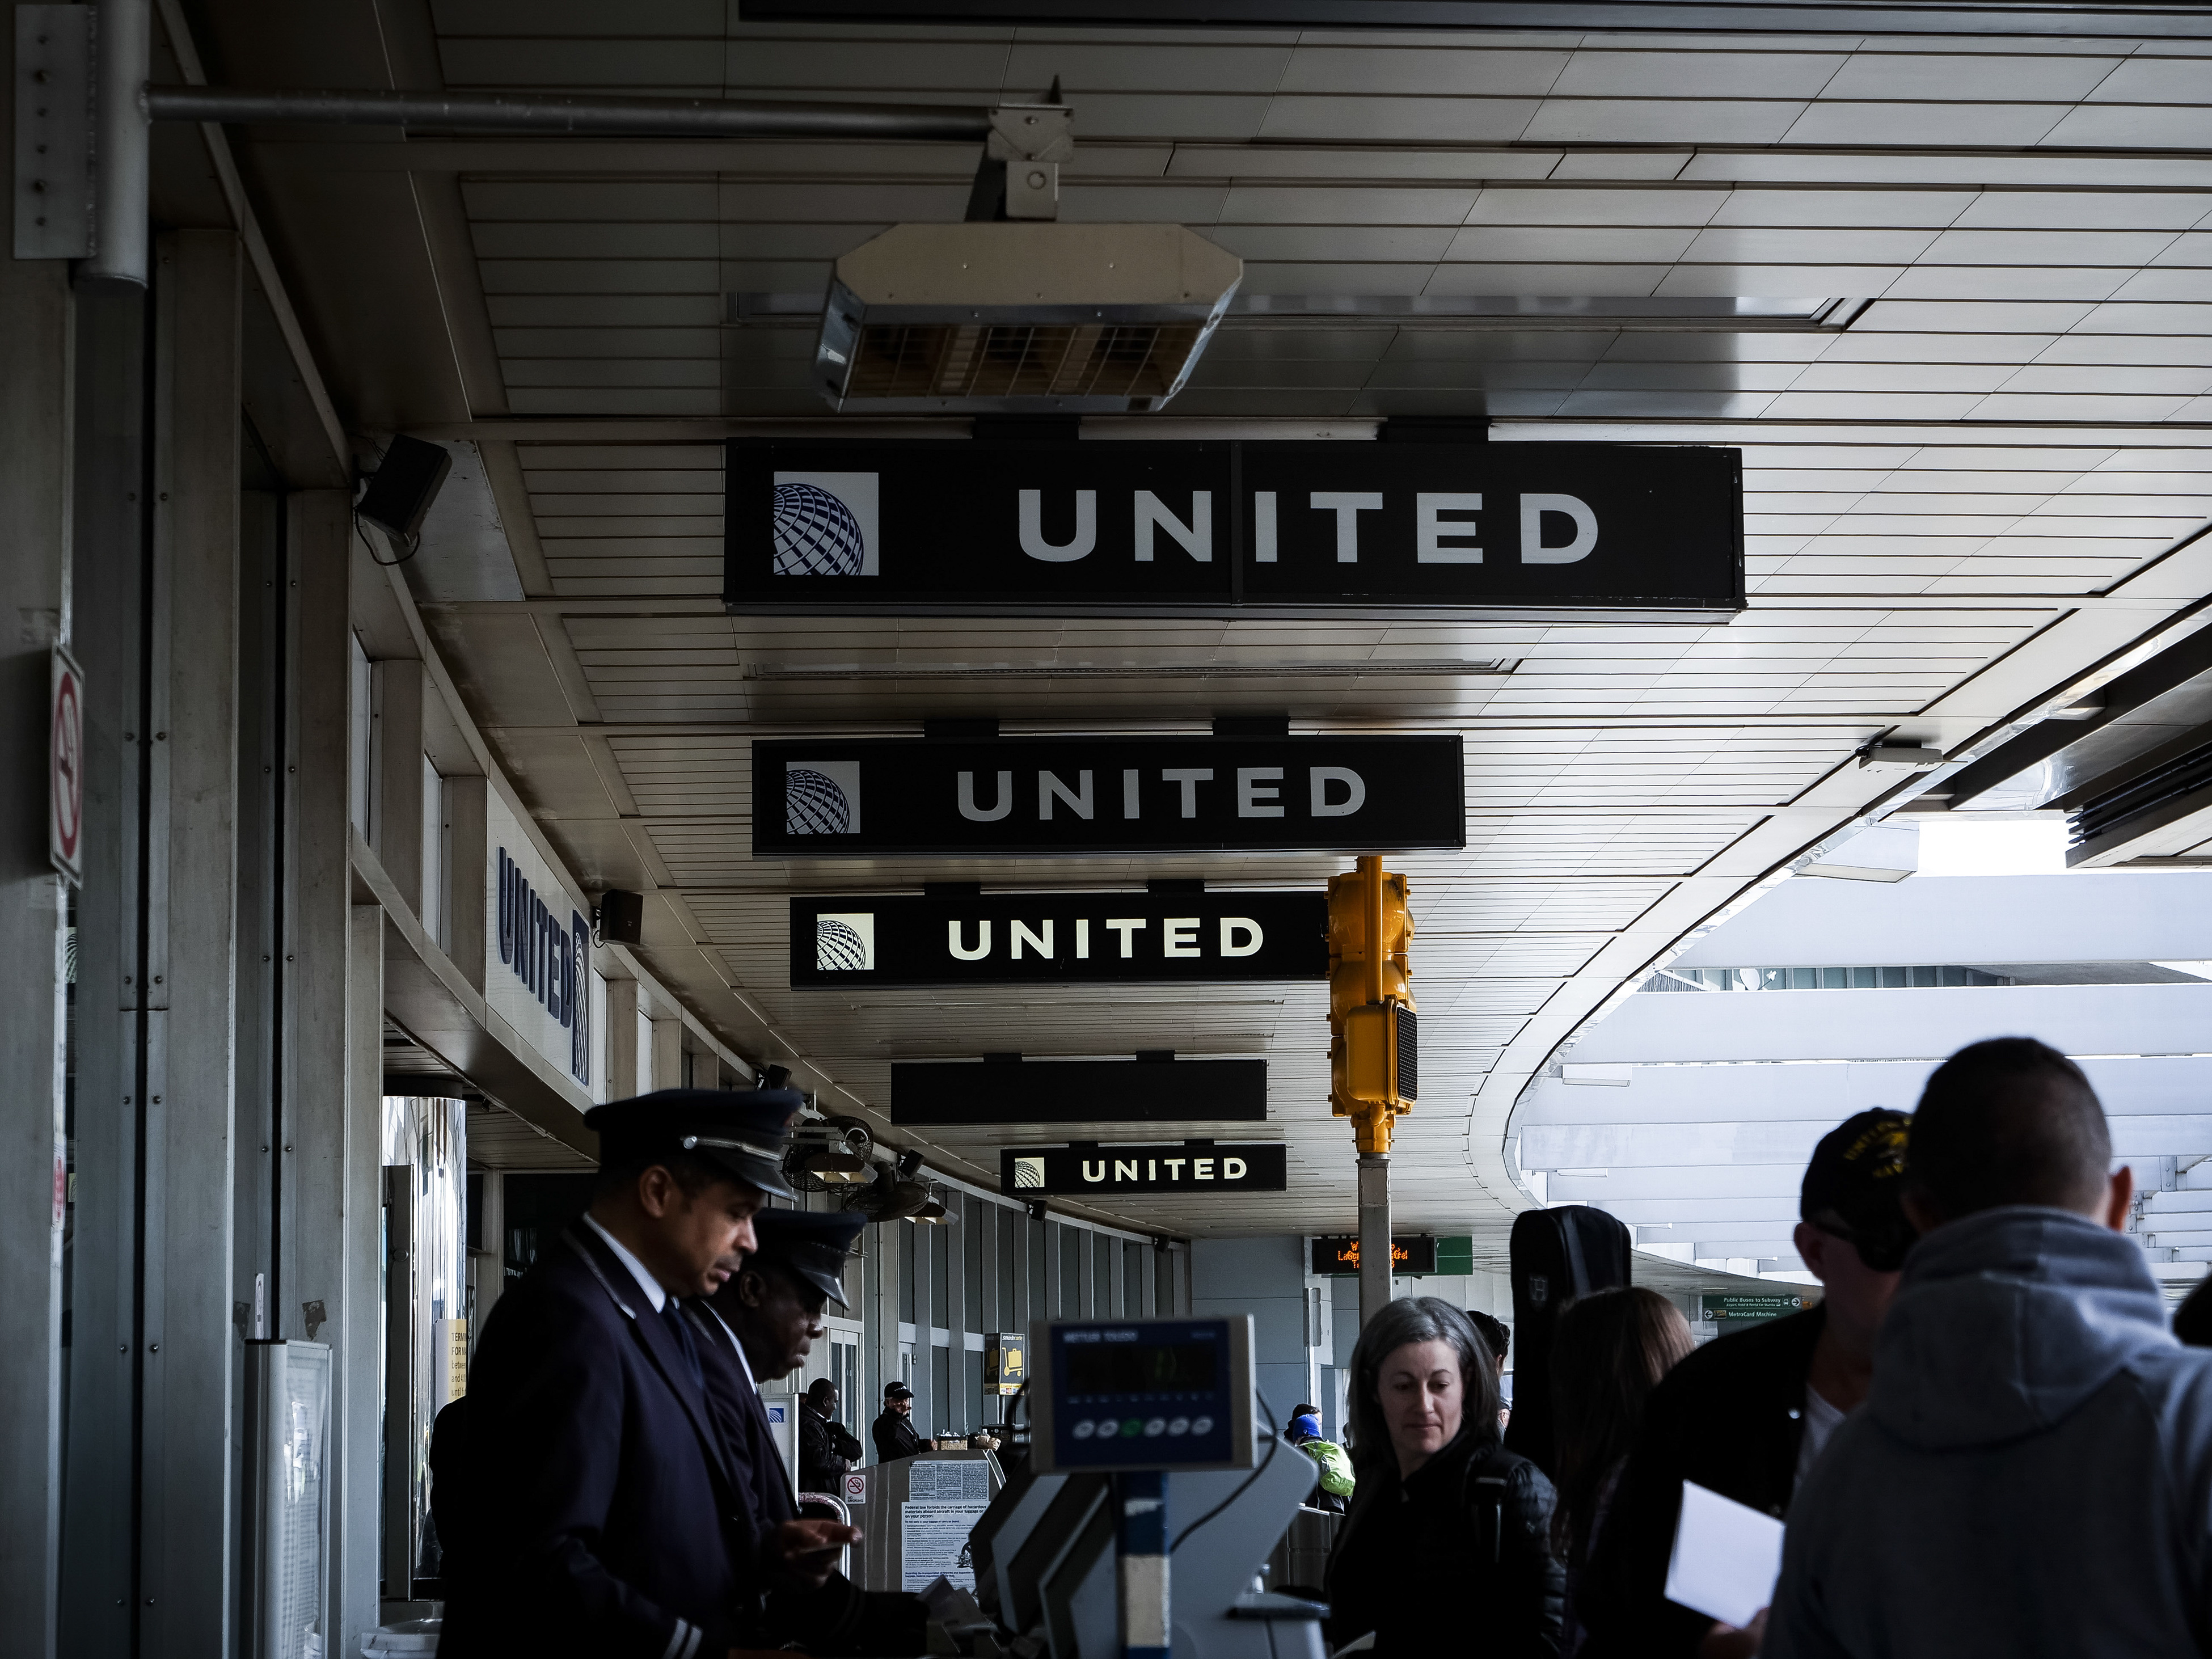 Less than three weeks after a passenger was dragged off a United Airlines flight at the Chicago airport, the carrier found itself facing another public relations fiasco on April 26 after a three-foot-long rabbit died on a flight from Britain. (John Taggart/The New York Times)